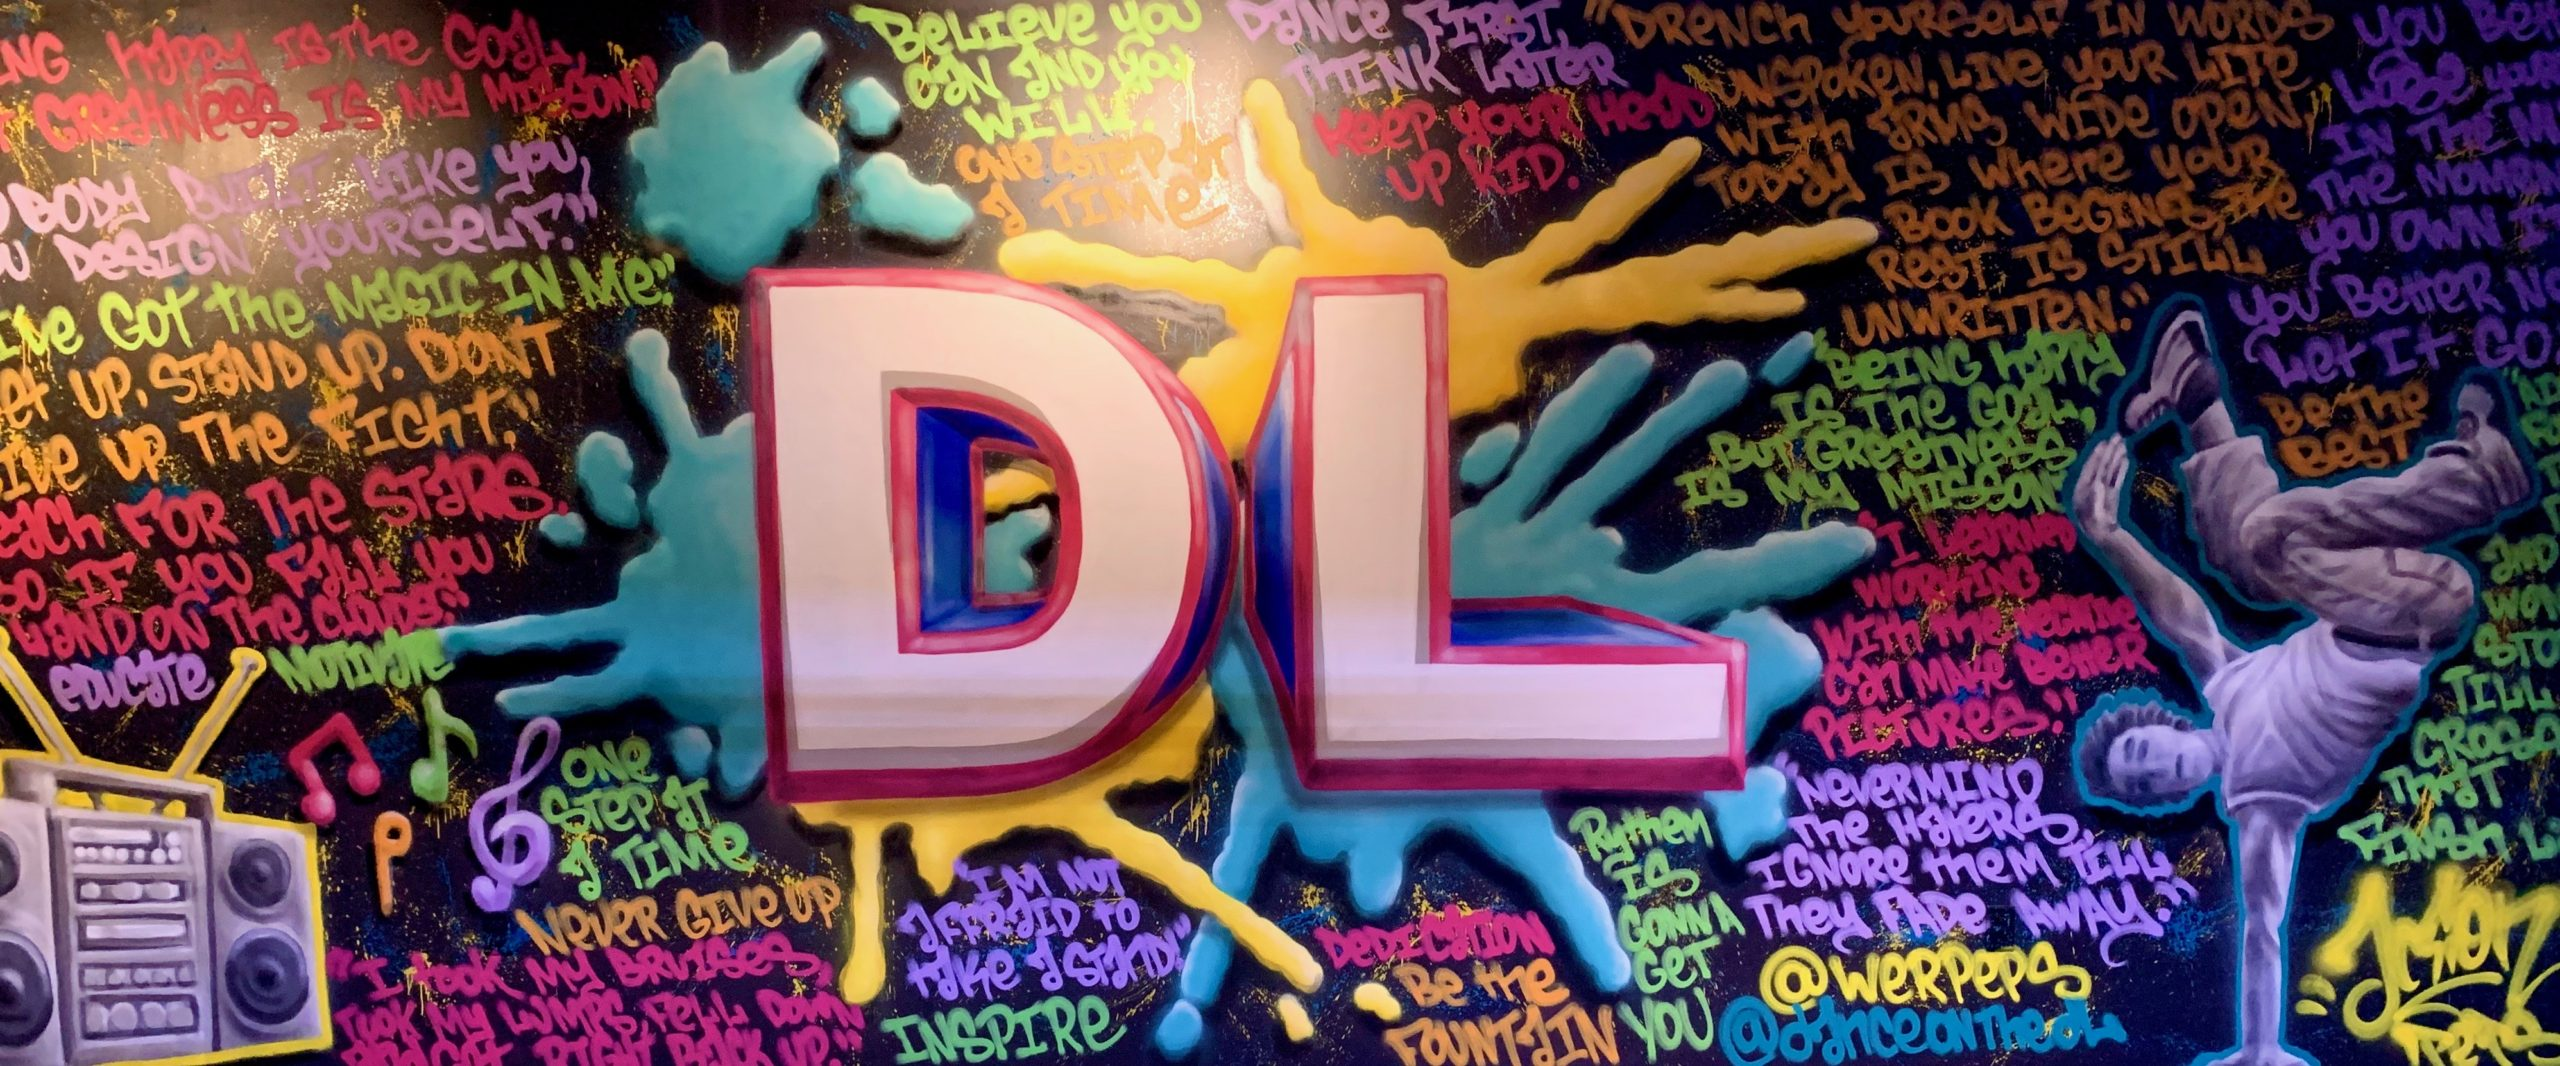 DL Studio is a Hip Hop & Breakdancing company located in the heart of Darien, CT.